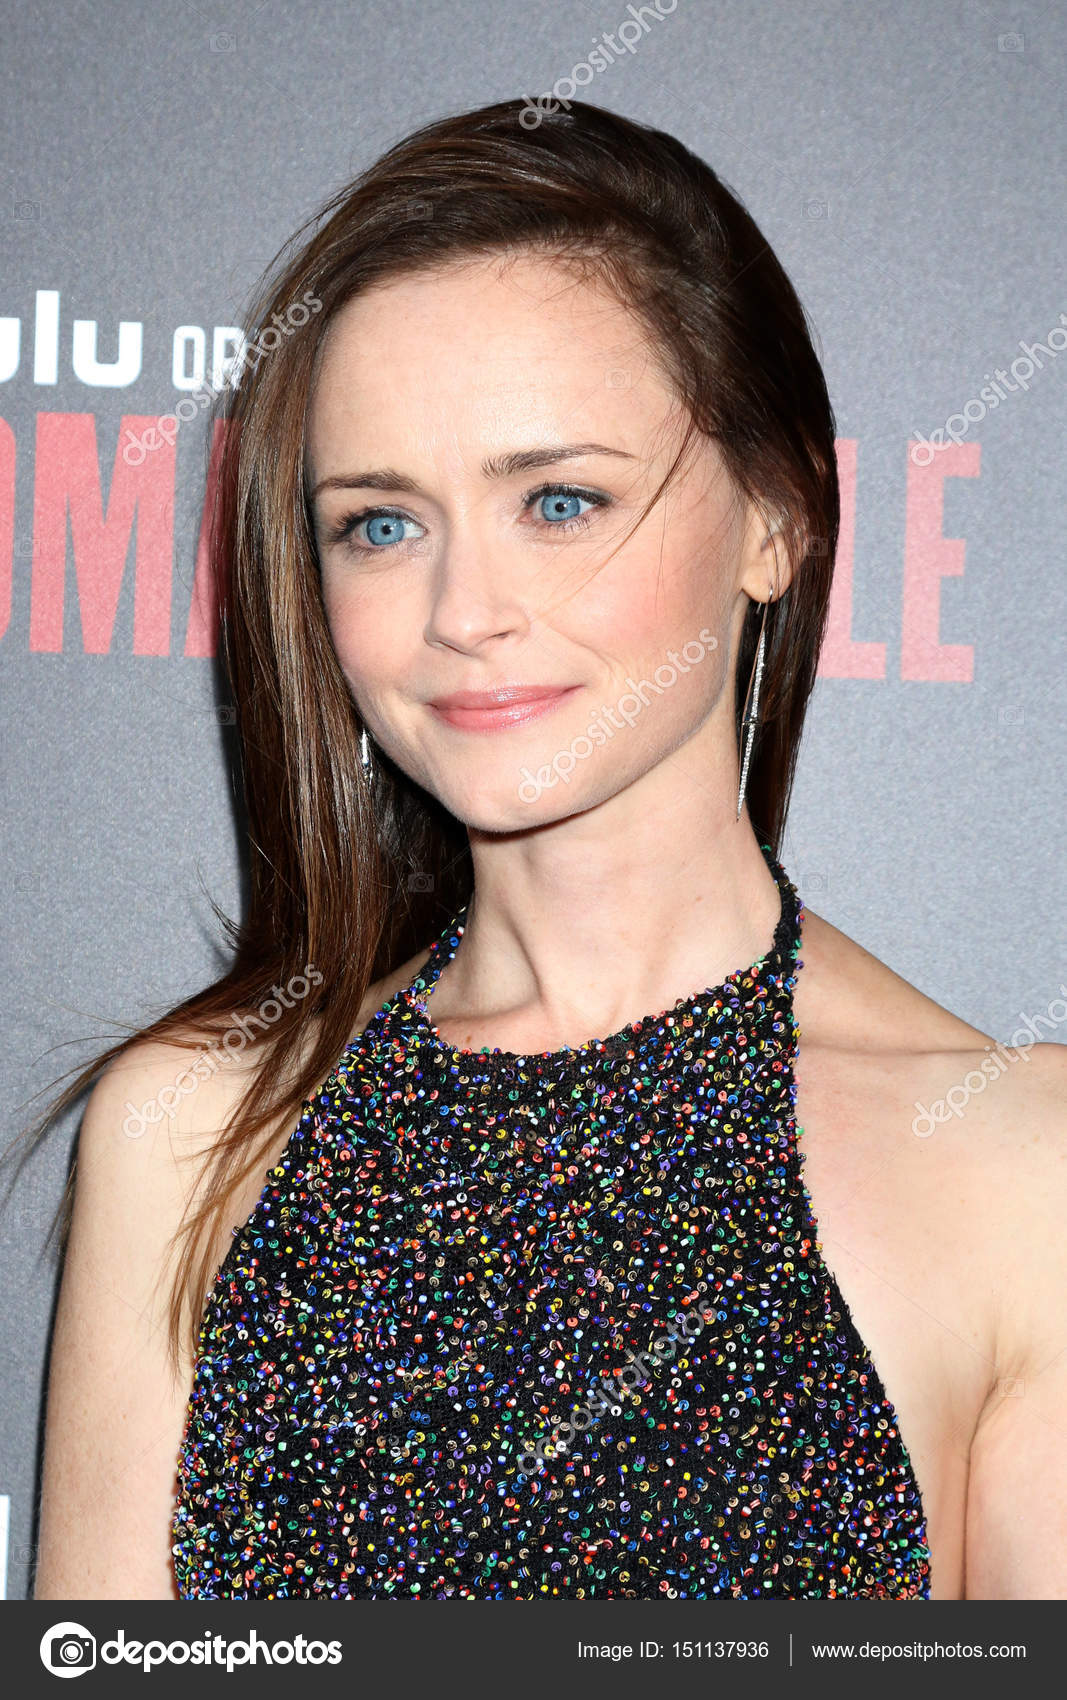 Pictures Alexis Bledel nudes (27 photos), Sexy, Leaked, Feet, cleavage 2018